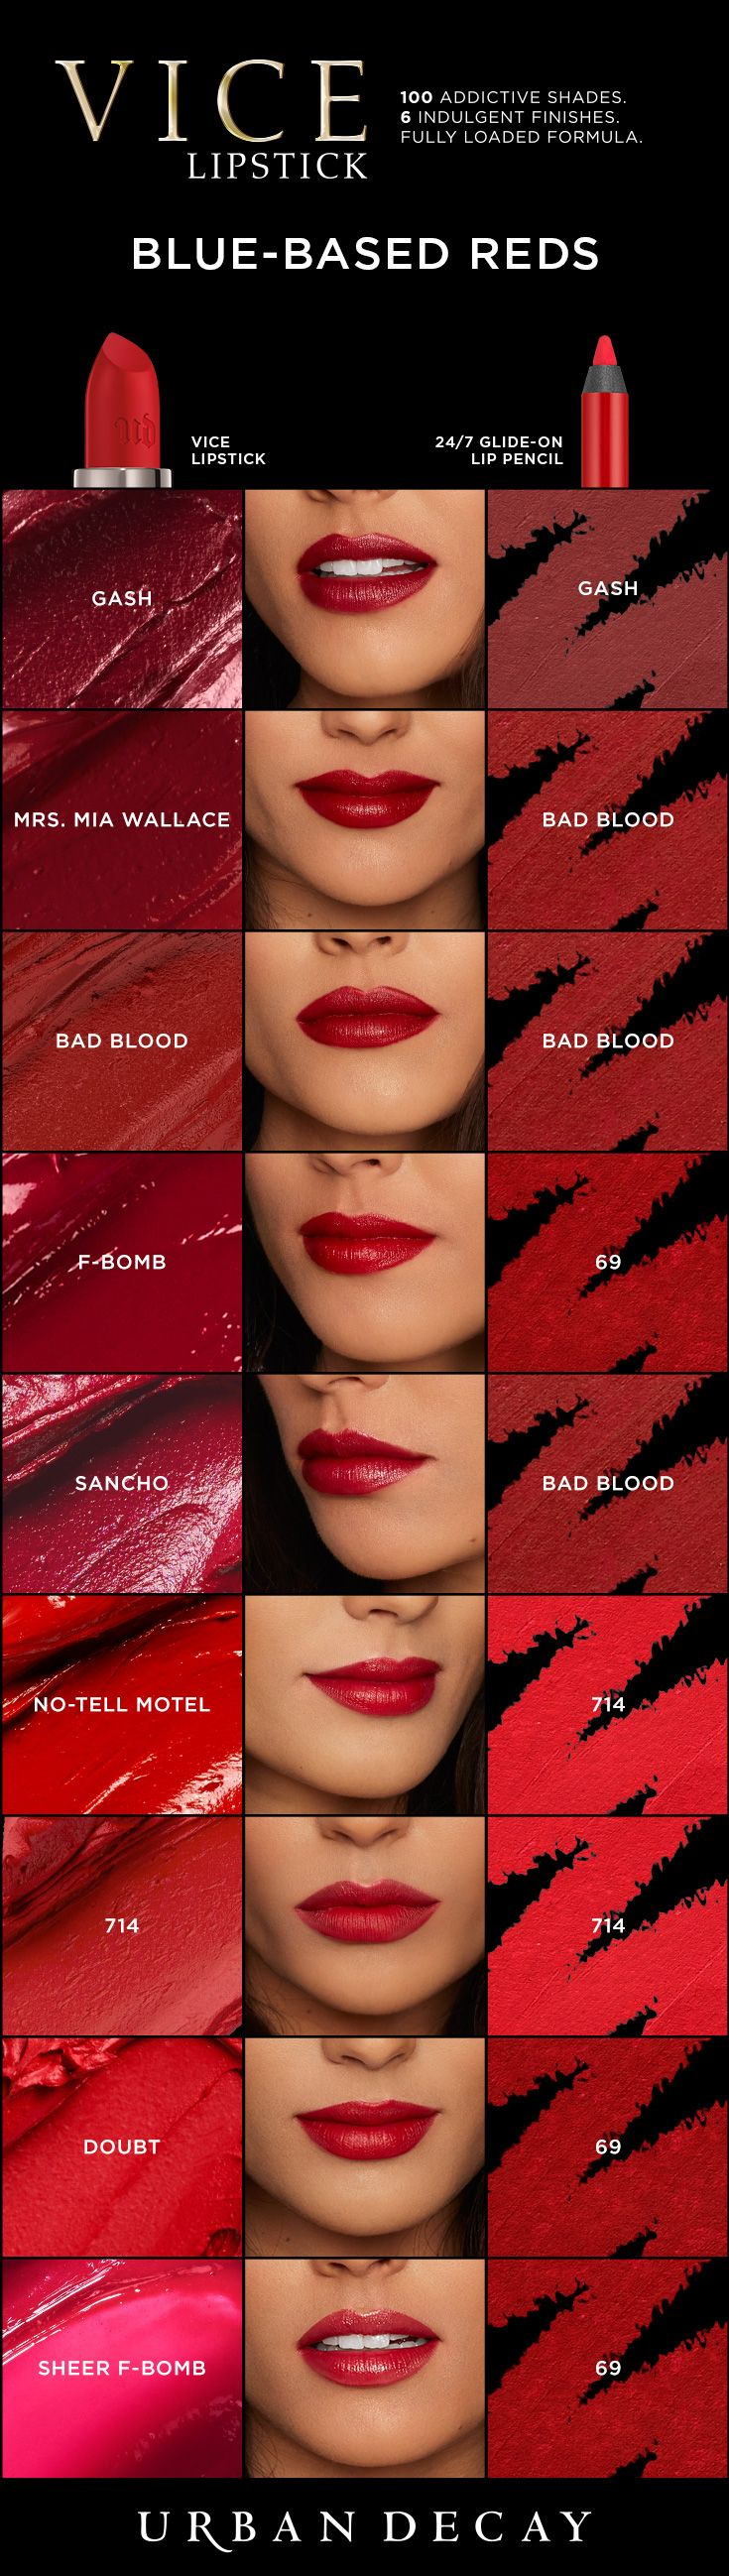 Looking for a bold red lip? Find your perfect shade of lipstick just in time for the holidays!